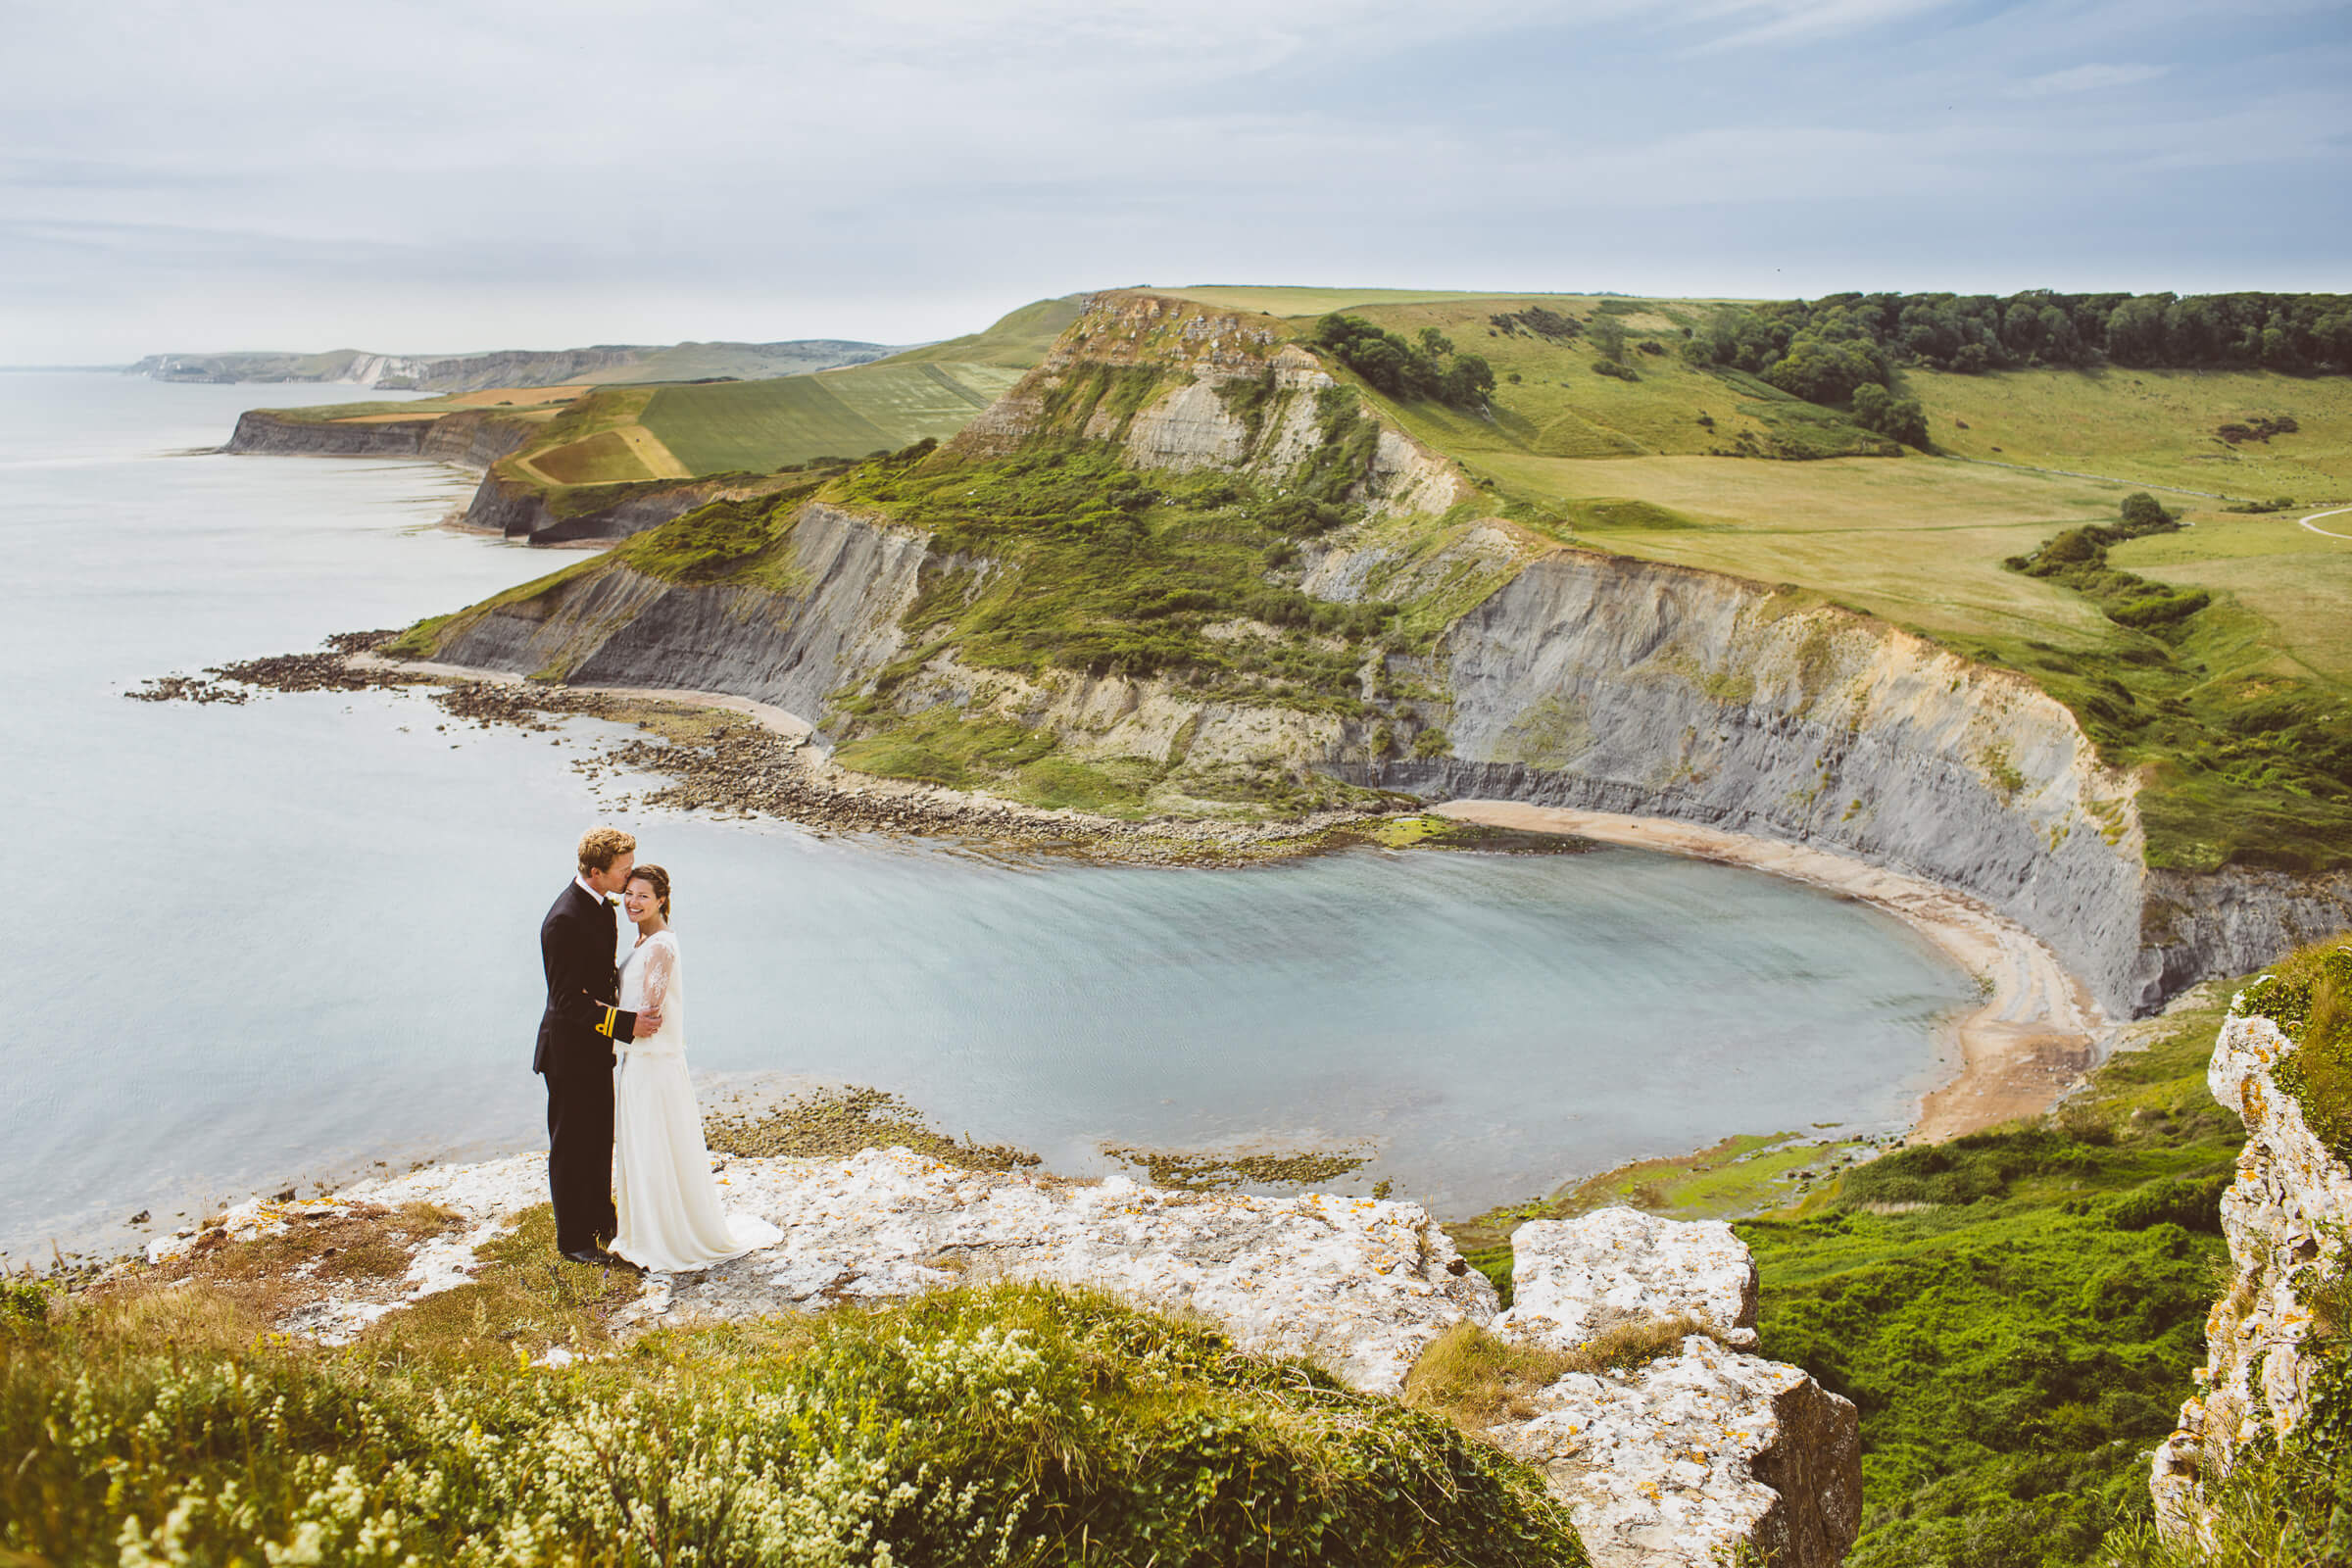 Wedding photographers Dorset